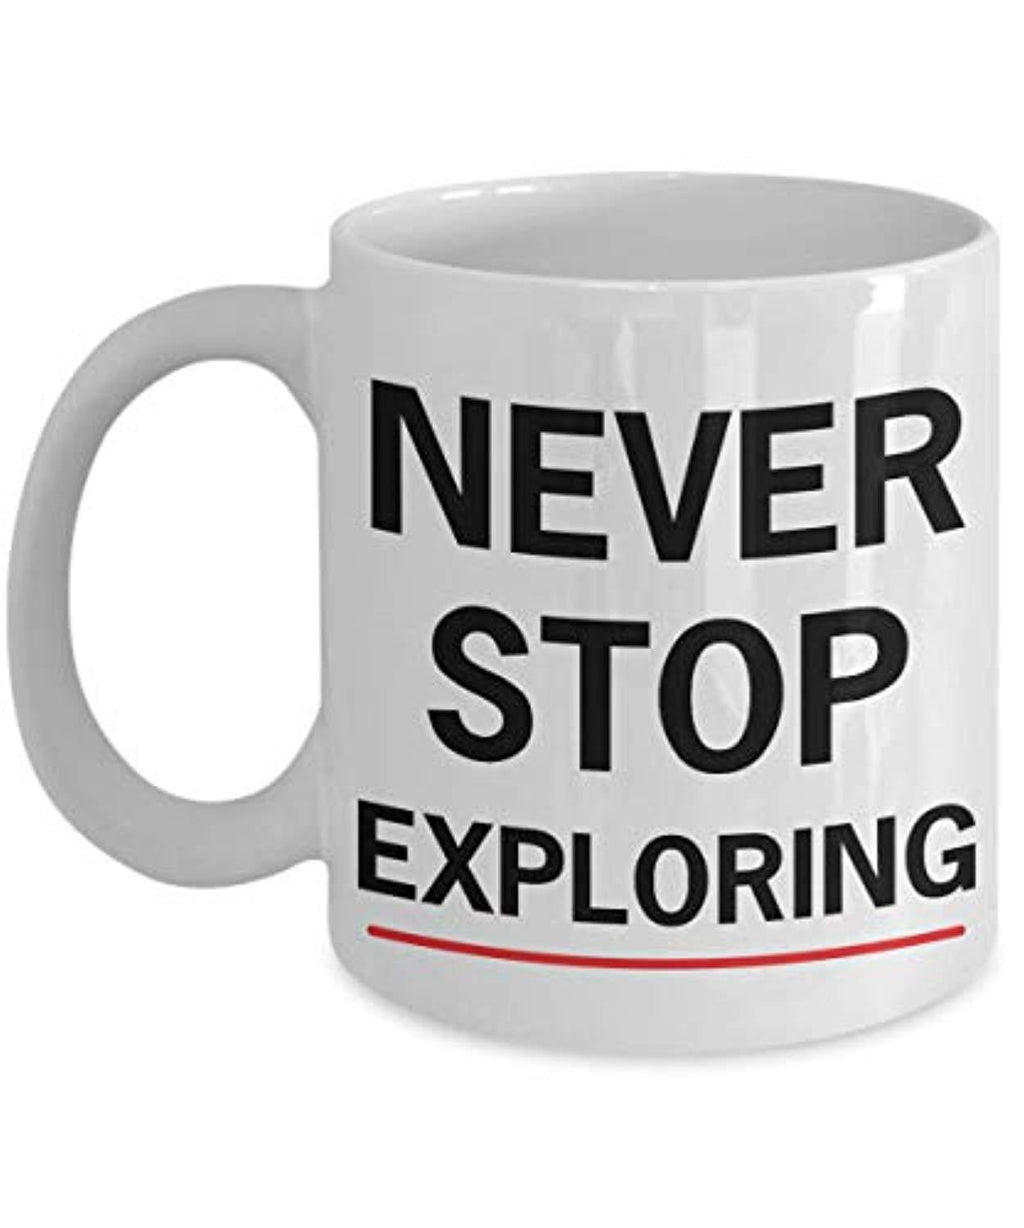 Never Stop Exploring Coffee Mug